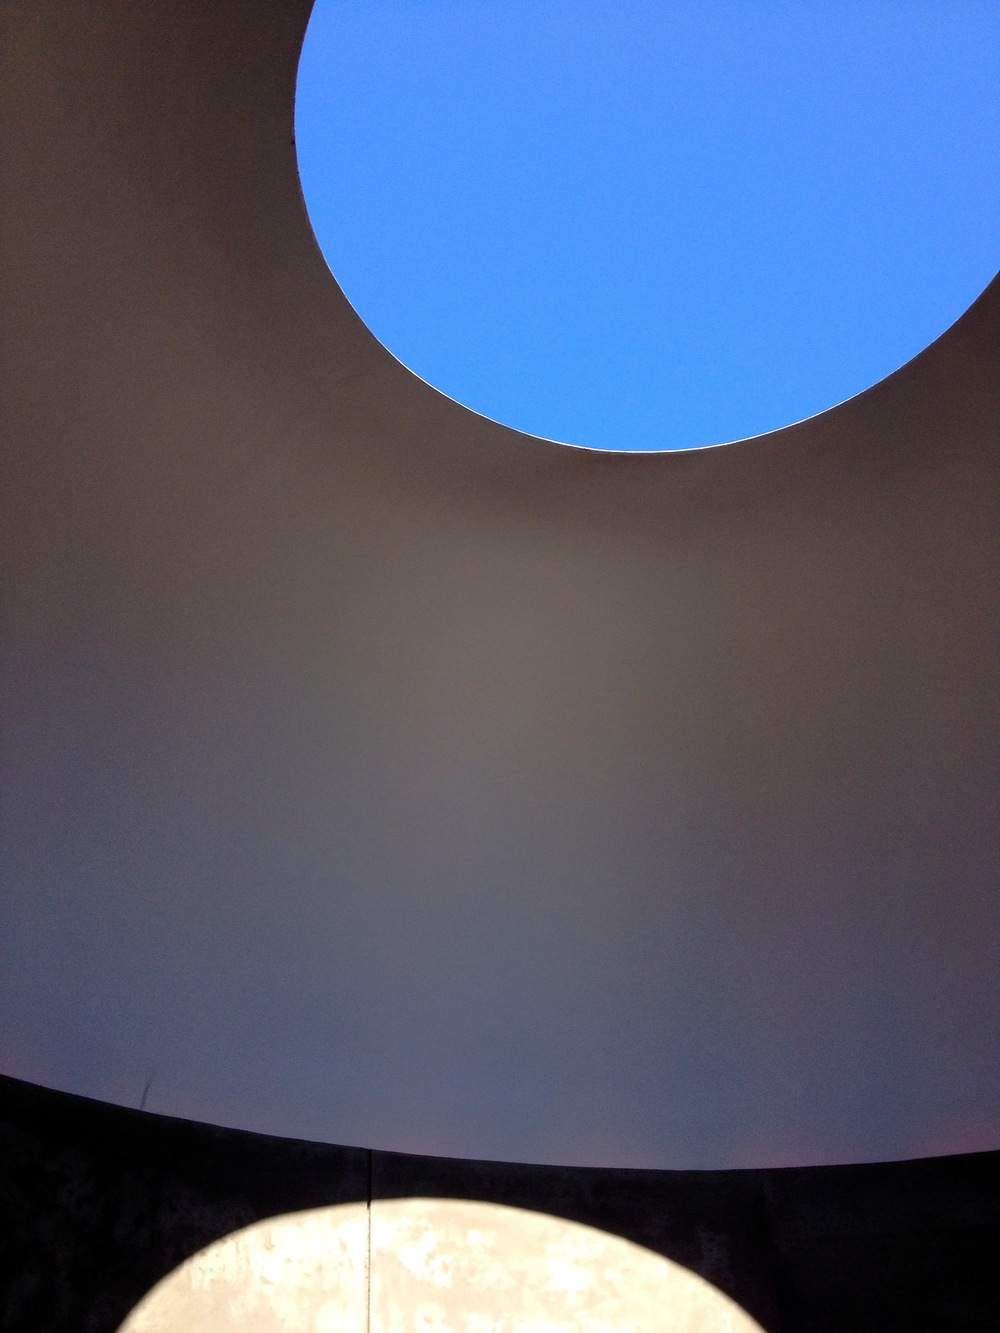 Inside 'Three Gems, 2005' by James Turrell @ the DeYoung Museum